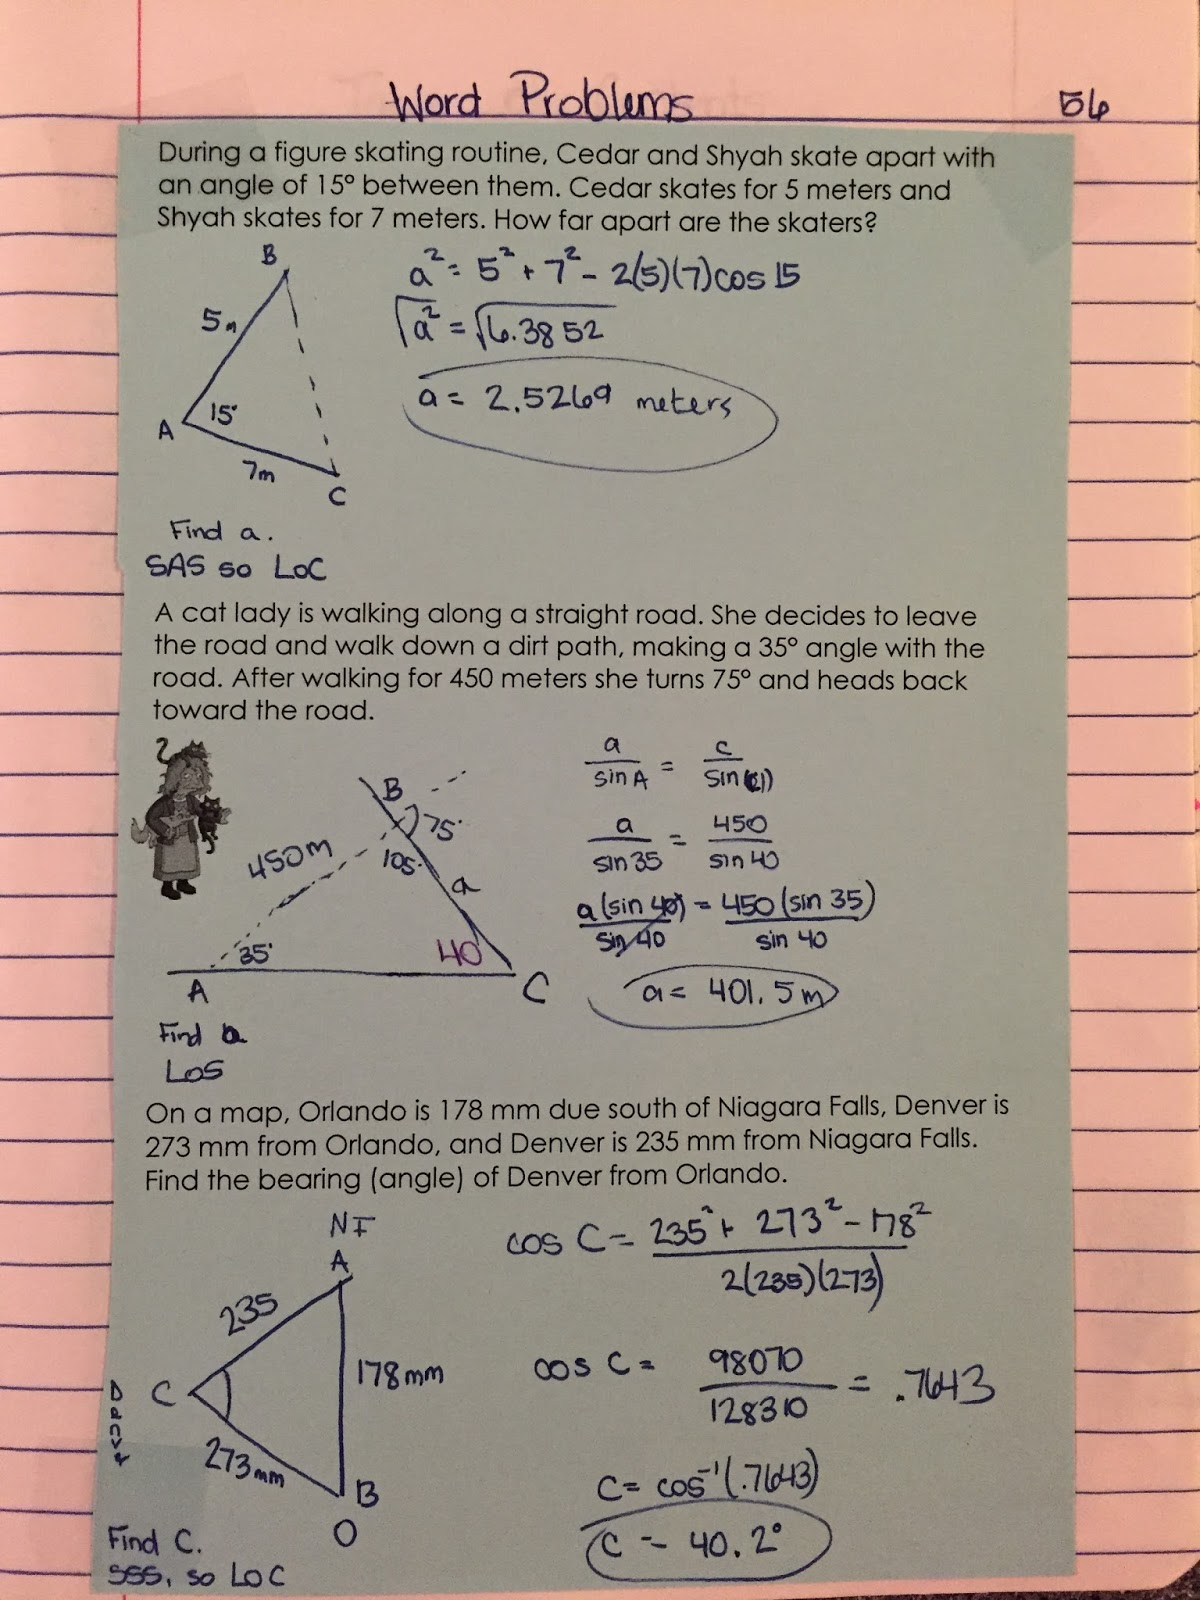 Law of Sines   Cosines worksheet by Sarah Dragoon   TpT in addition Solve triangles using the law of cosines  practice    Khan Academy together with Law of Cosines   Kuta Infinite Algebra 2 Name The Law of likewise Solving Triangles Worksheets   Sine and Cosine besides Law Of Sines And Cosines Worksheet Answer Key   Kidz Activities likewise Sin and Cosine Worksheets   maths   Pinterest   Law of cosines besides Law Of Sines and Cosines Worksheet   Mychaume further The Law of Cosines Worksheets moreover Law of Sines and Cosines Worksheet with Key  pdf besides worksheet  Law Of Cosines Worksheet  Worksheet Fun Worksheet Study in addition  also  also Solve triangles using the law of cosines  practice    Khan Academy likewise  together with Law of Sines and Cosines  When to use each   video tutorial likewise Law of Cosine to Figure Area of a Triangle. on the law of cosines worksheet